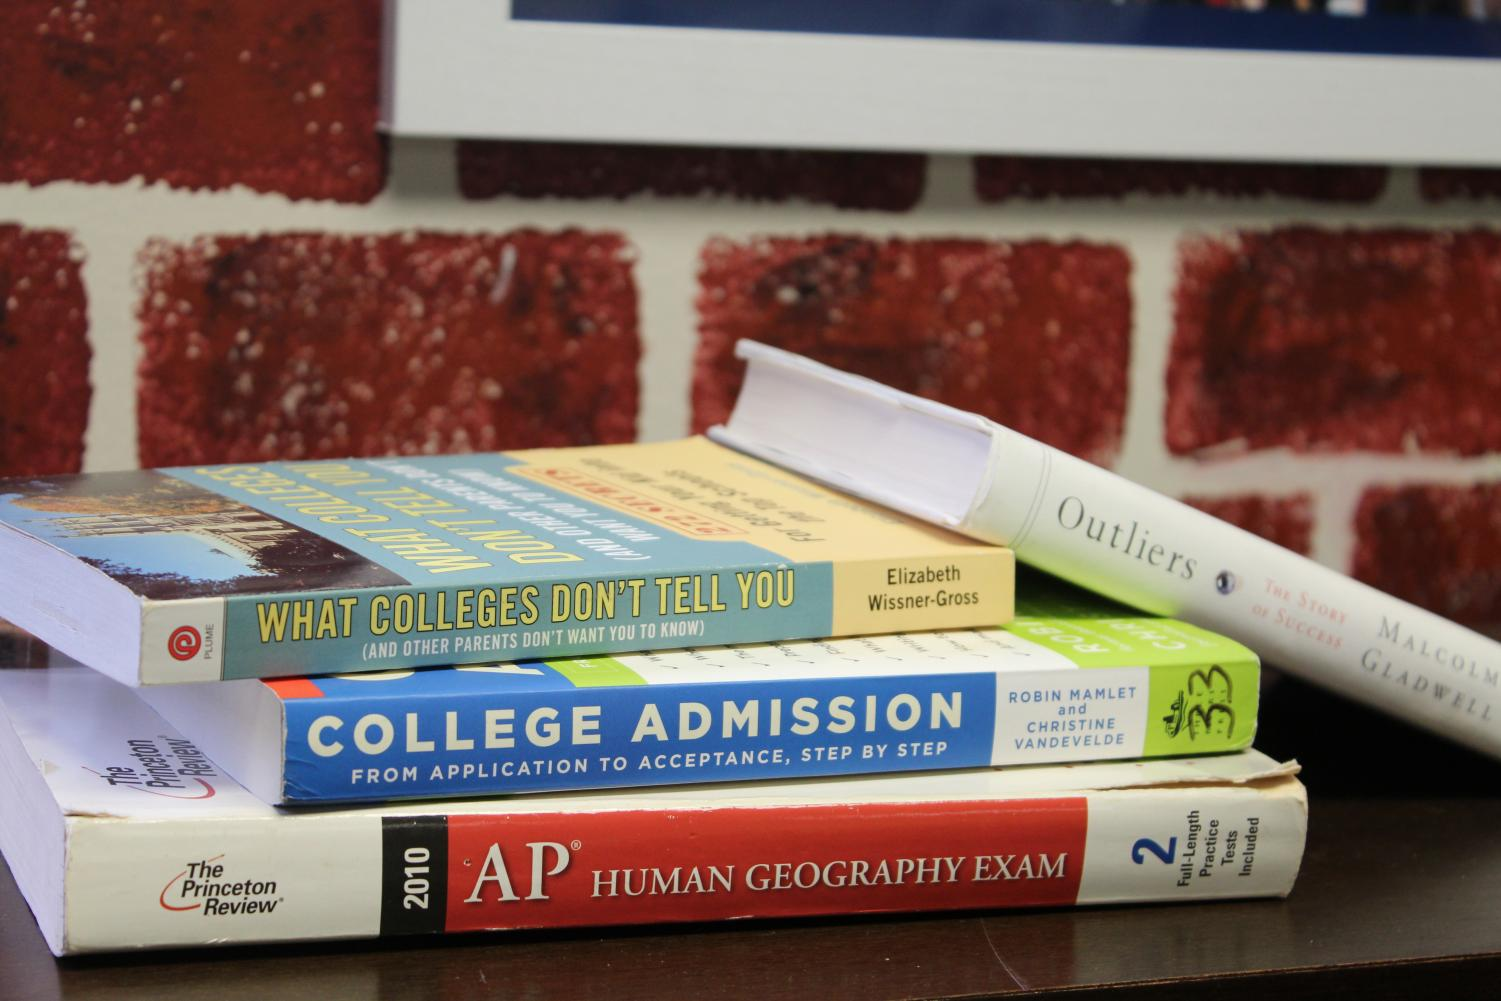 """As a requirement for their freshman curriculum, all ninth grade magnet students must take AP Human Geography, a course taught primarily by James Auld.   """"Historically, we have about anywhere from 95 to 100 percent of students [sign up for exams]. This year we have 83 out of 88 [students]. We still have to finish two whole units. Then they do a group collaborative study project outside of school that goes in as a comprehensive exam grade, and then we have after-school sessions for anyone and everyone that would like to come. So between those two, they have twelve different opportunities,"""" Auld said.  In addition to attending various study sessions and using the college prep and information books pictured above to ready themselves for their upcoming exams, students may also look to self-help books like Malcolm Gladwell's Outliers, for guidance. This influential book explains the secret to accessing the deepest facets of human potential, offering a fuller, more complex definition of success."""